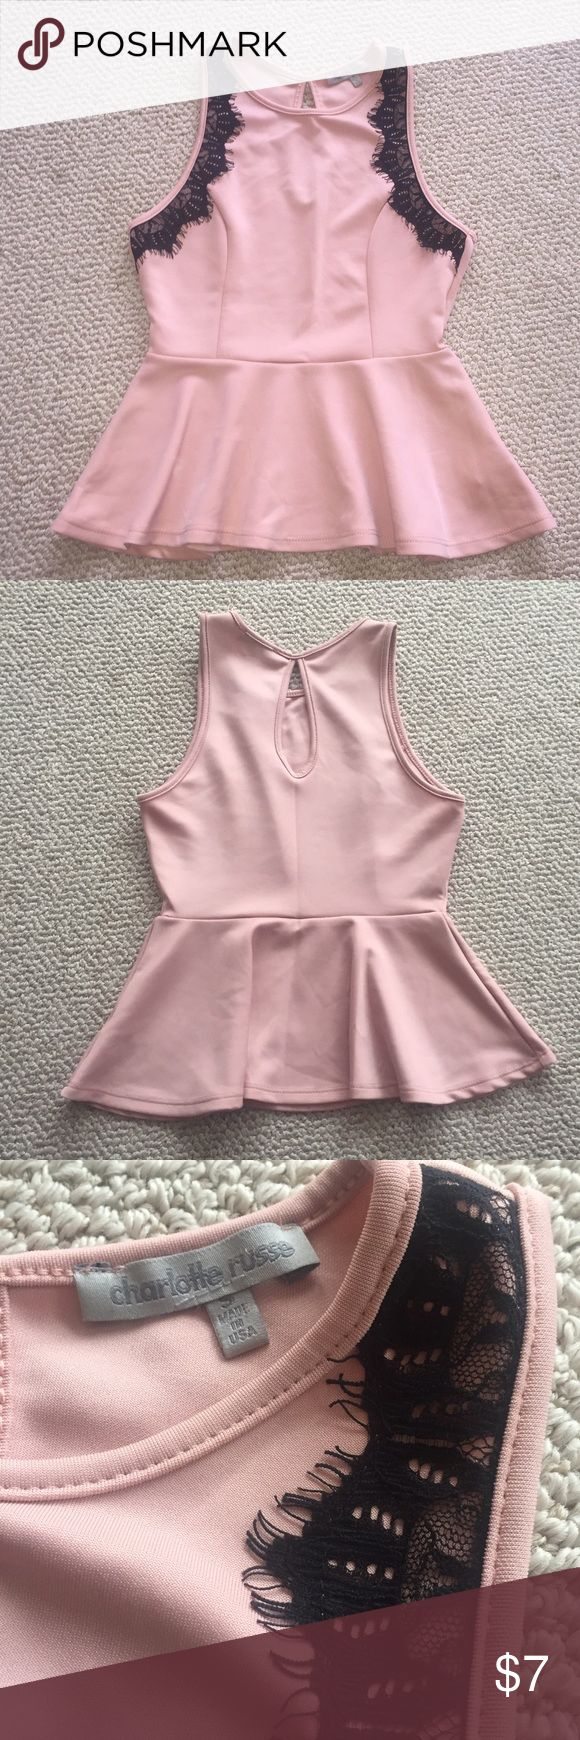 Peplum top Pink peplum top looks great with a black skirt or jeans. No damage Charlotte Russe Tops